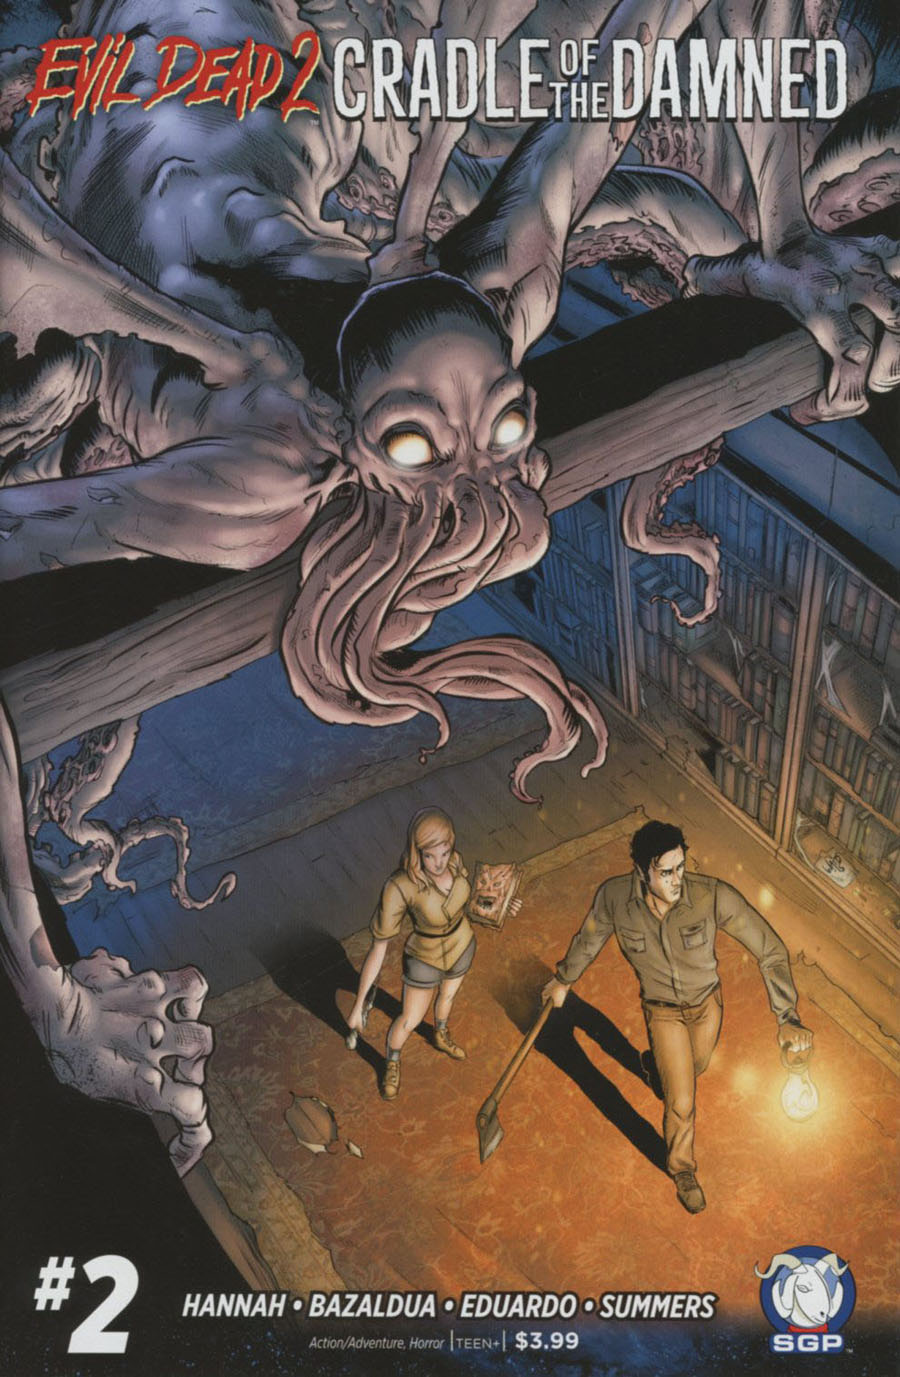 Evil Dead 2 Cradle Of The Damned #2 Cover A Regular Larry Watts Cover